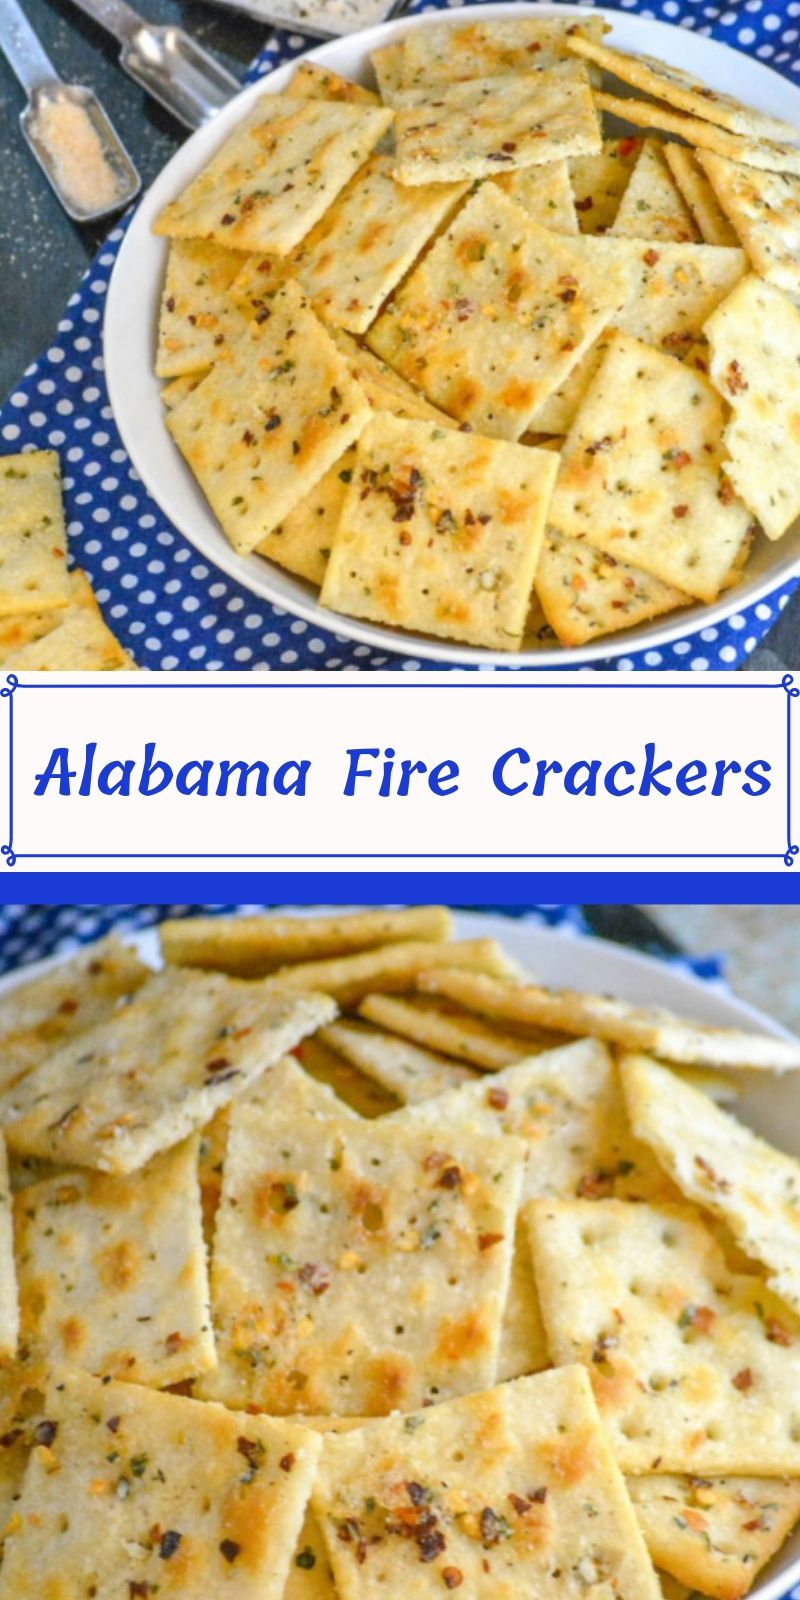 https://4sonrus.com/alabama-fire-crackers/